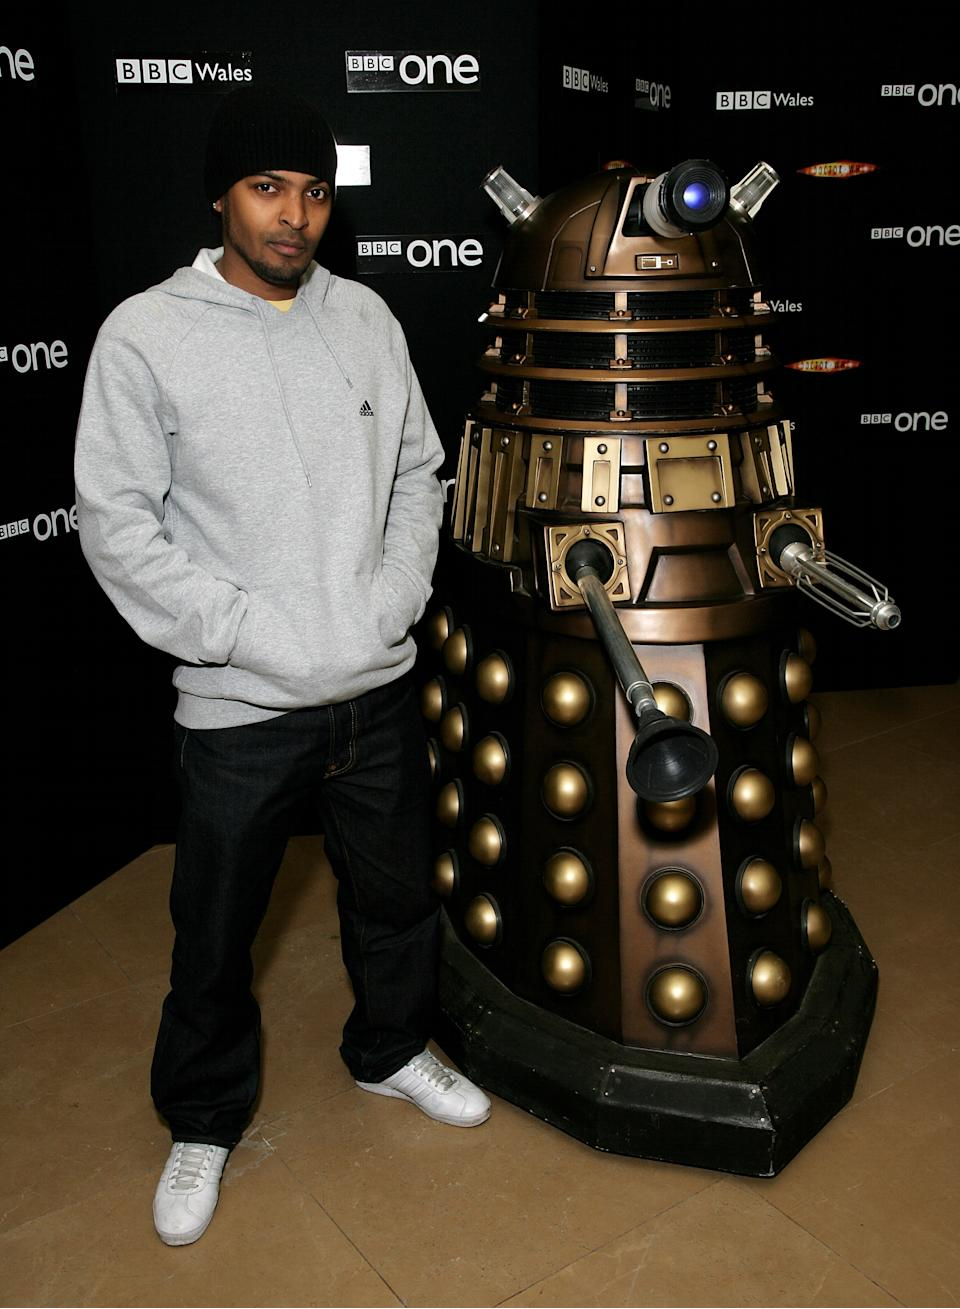 LONDON - MARCH 21: Actor Noel Clarke attends a gala screening of 'Doctor Who' to promote the third series of the television science fiction drama at the Mayfair Hotel on March 21, 2007 in London, England. (Photo by Dave Hogan/Getty Images)